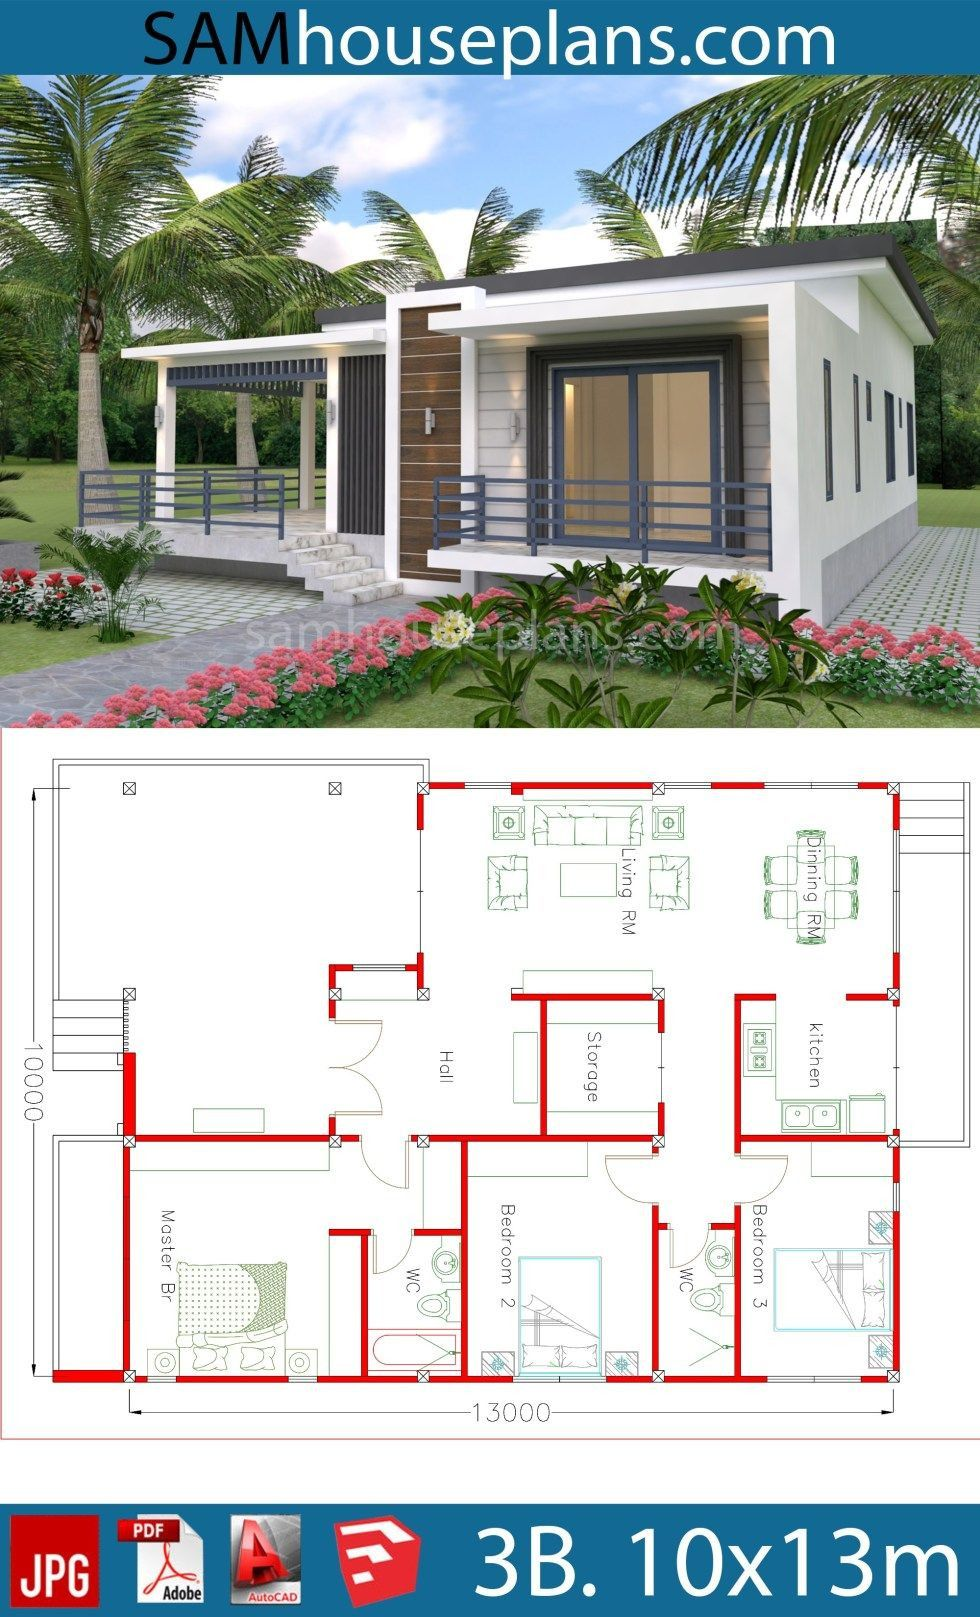 3 Bedroom House Design 3 Bedroom House Design 2020 5 Home Plans 11x13m 11x14m 12x10m 13x12m Affordable House Plans Vacation House Plans Beautiful House Plans